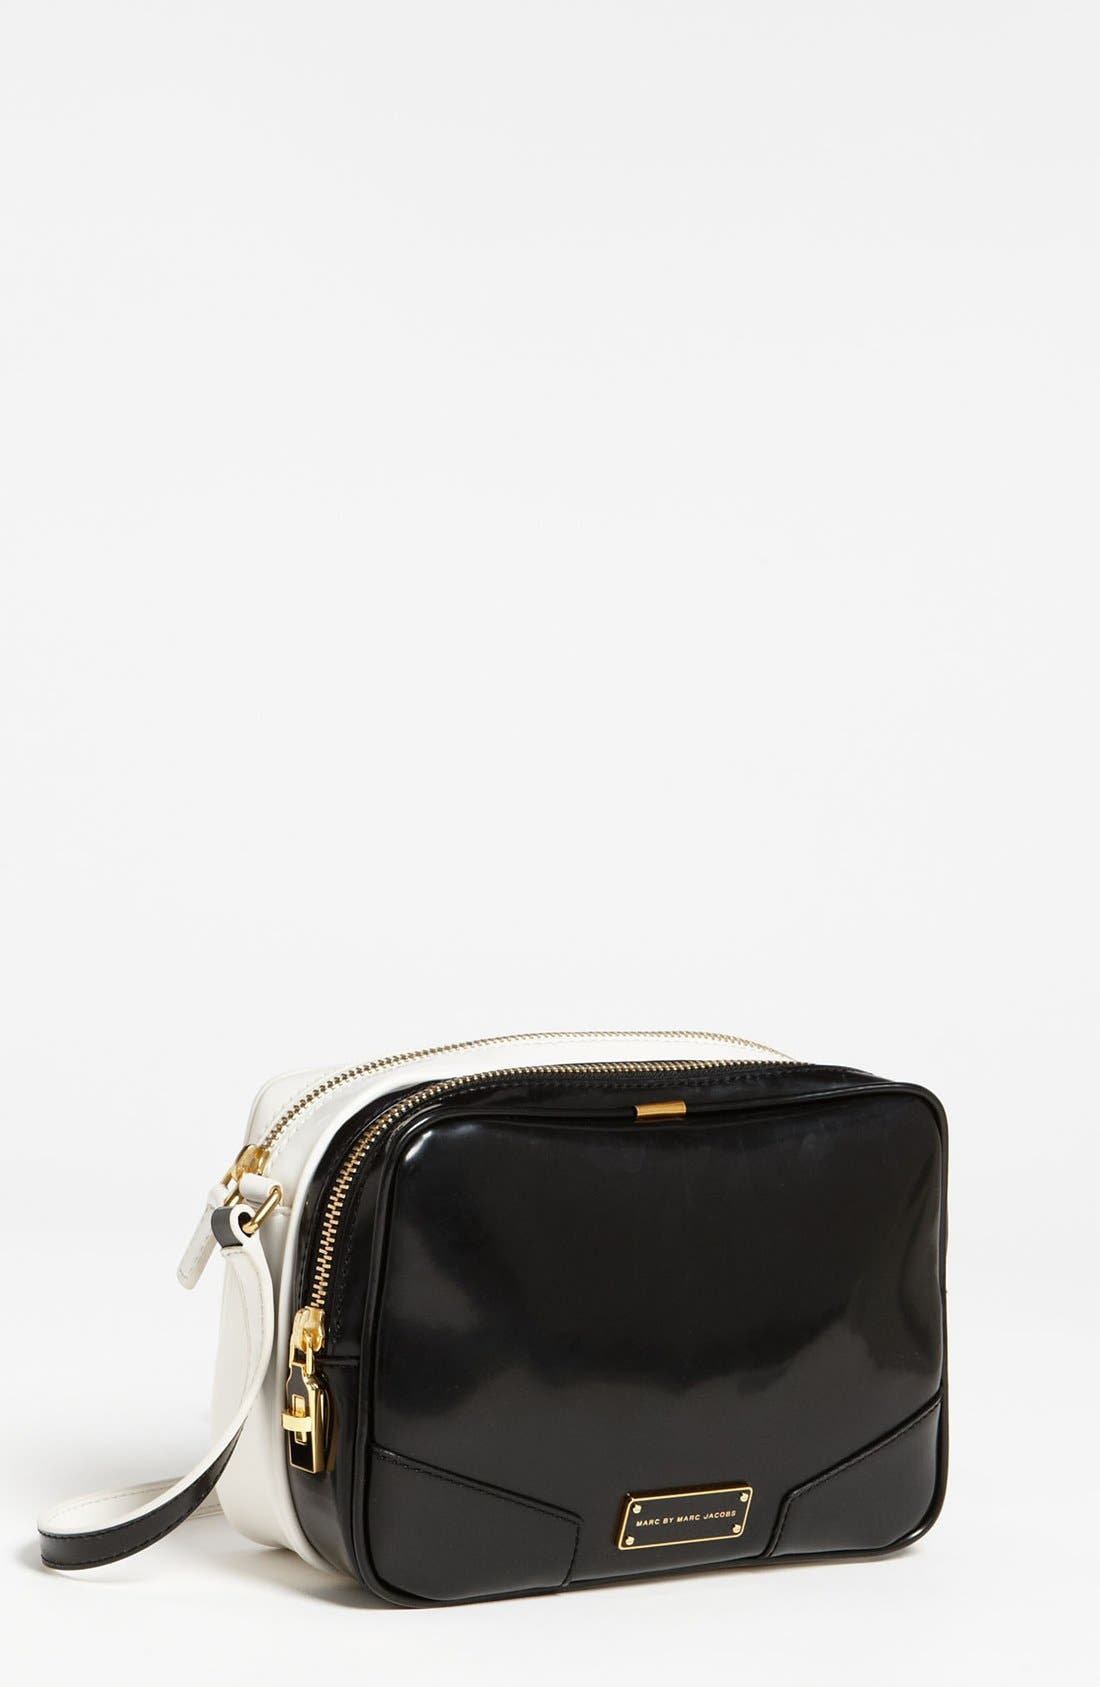 Main Image - MARC BY MARC JACOBS 'Alley Katz - Colorblocked Bunny' Crossbody Bag